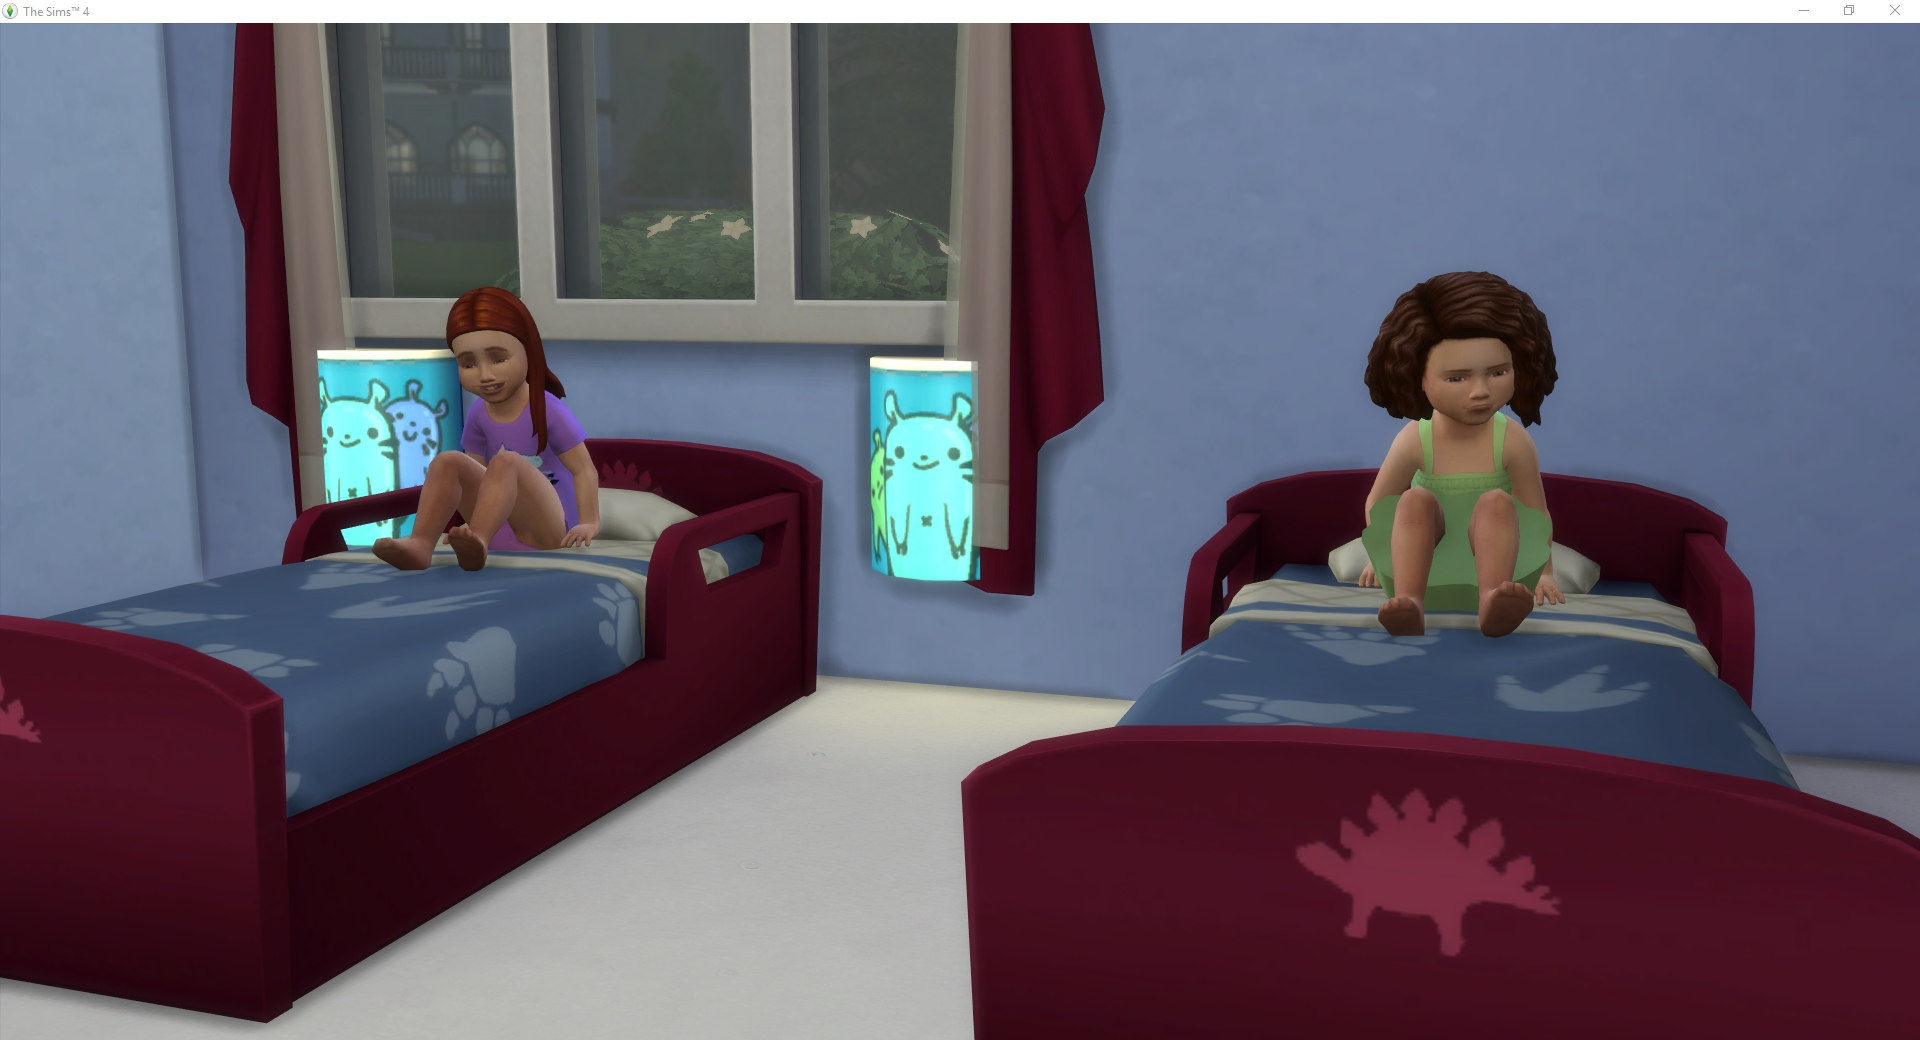 Masterful Sims: Toddler Goals | Love My Sims